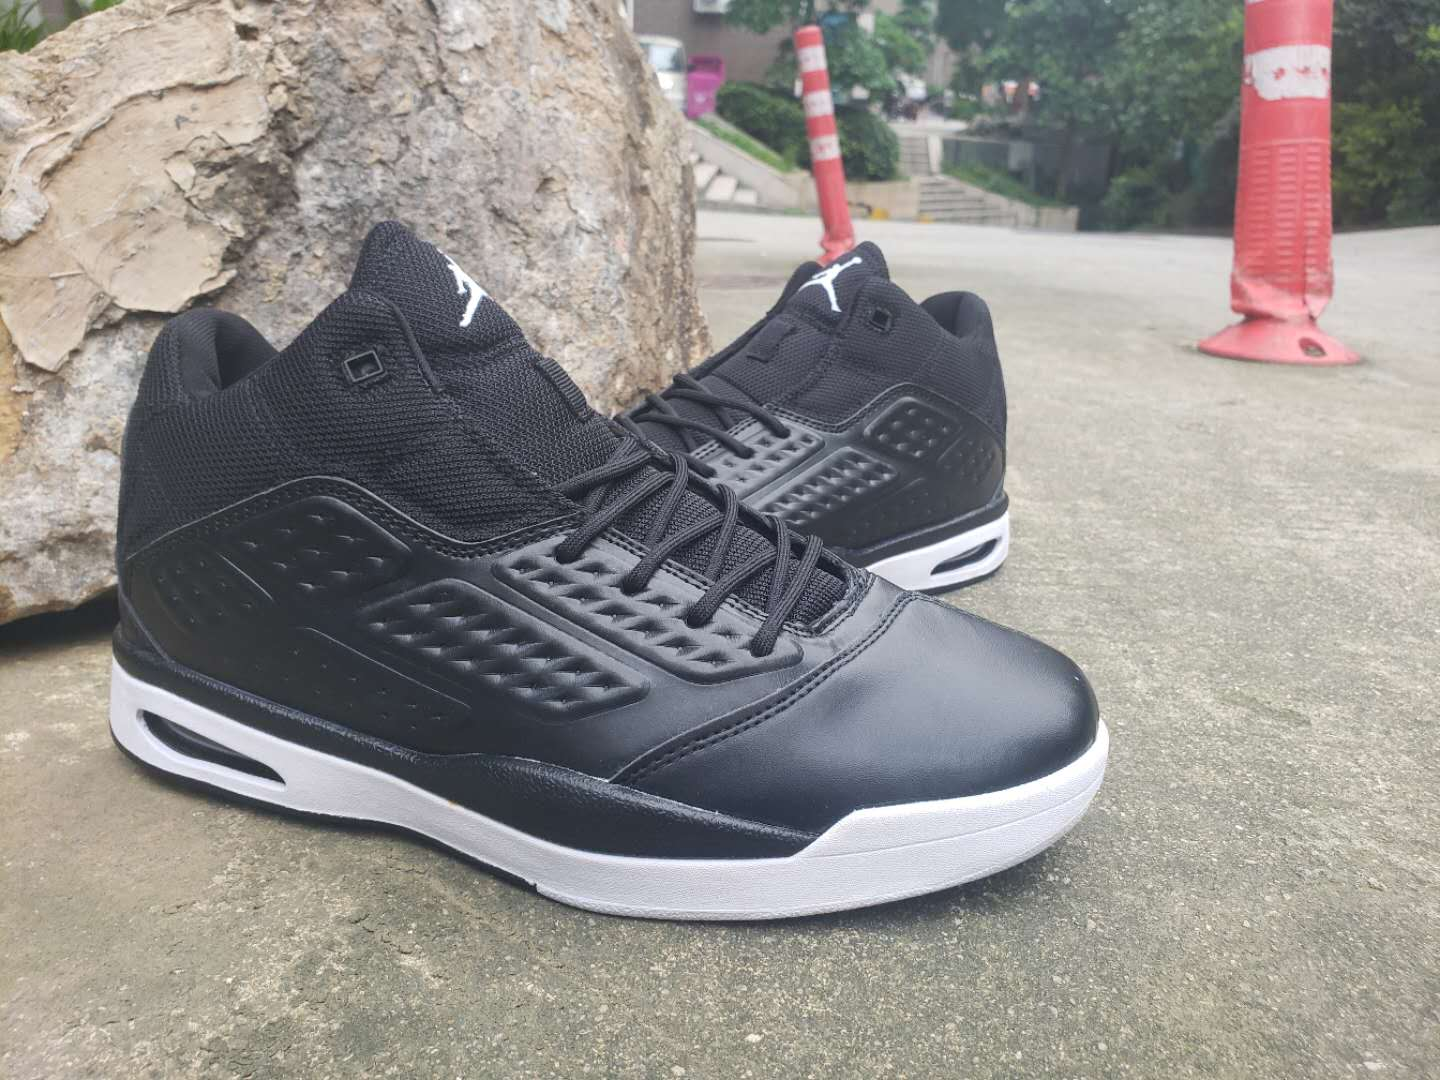 Jordan 2019 New School Black White Shoes